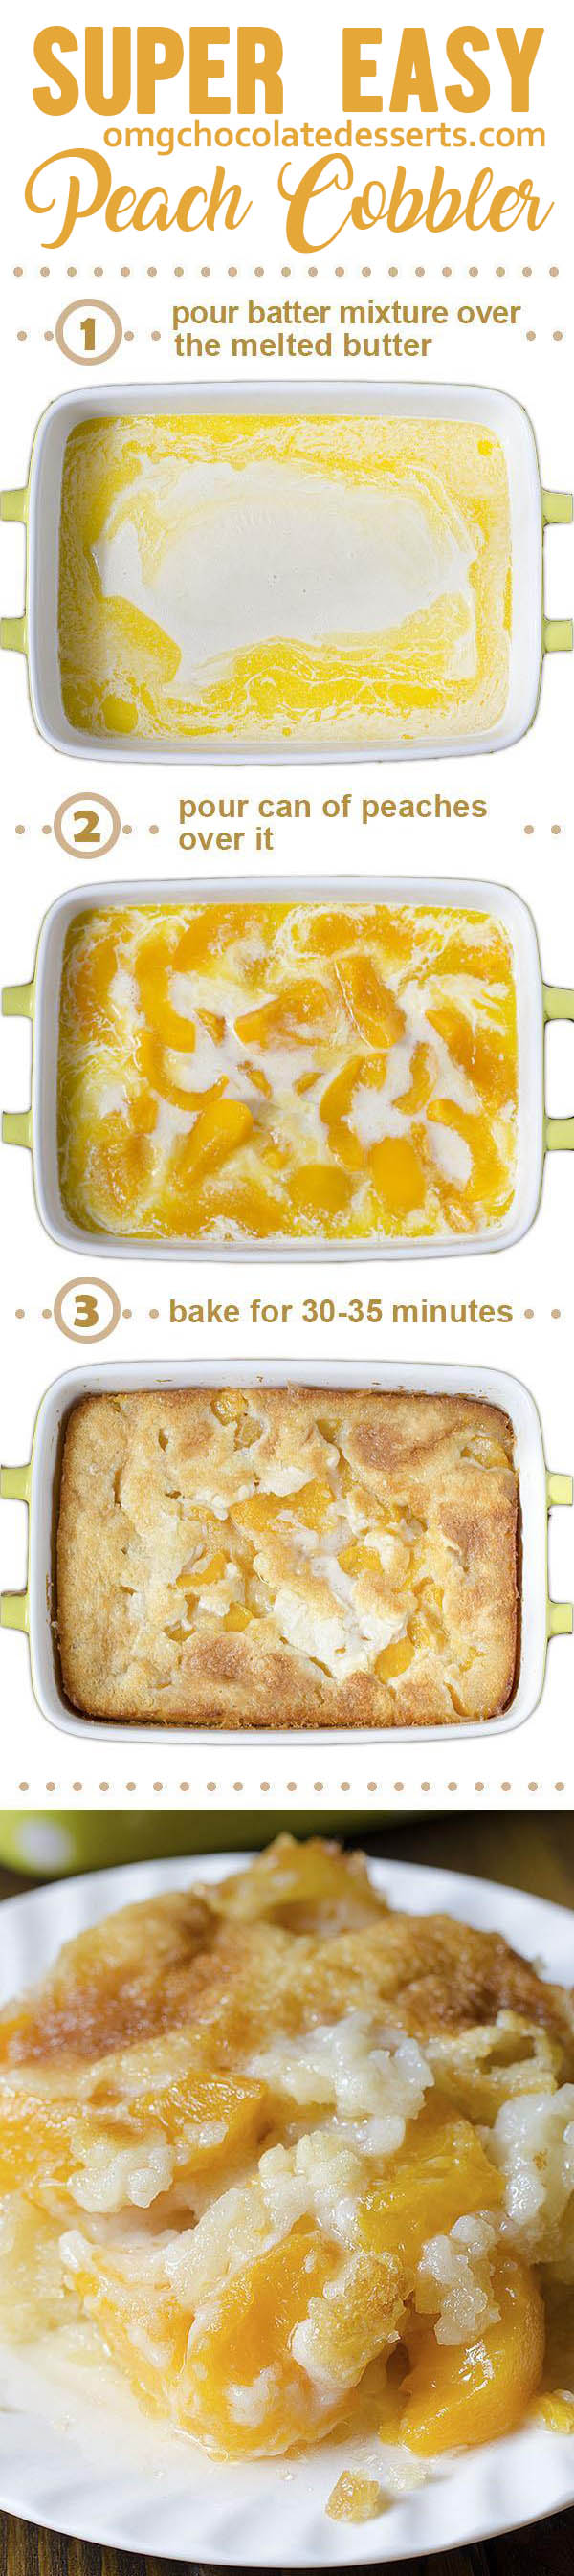 This easy peach cobbler recipe is one of our most popular desserts and is the pefect ending to any summertime meal. This really is the best Peach Cobbler I've EVER had.